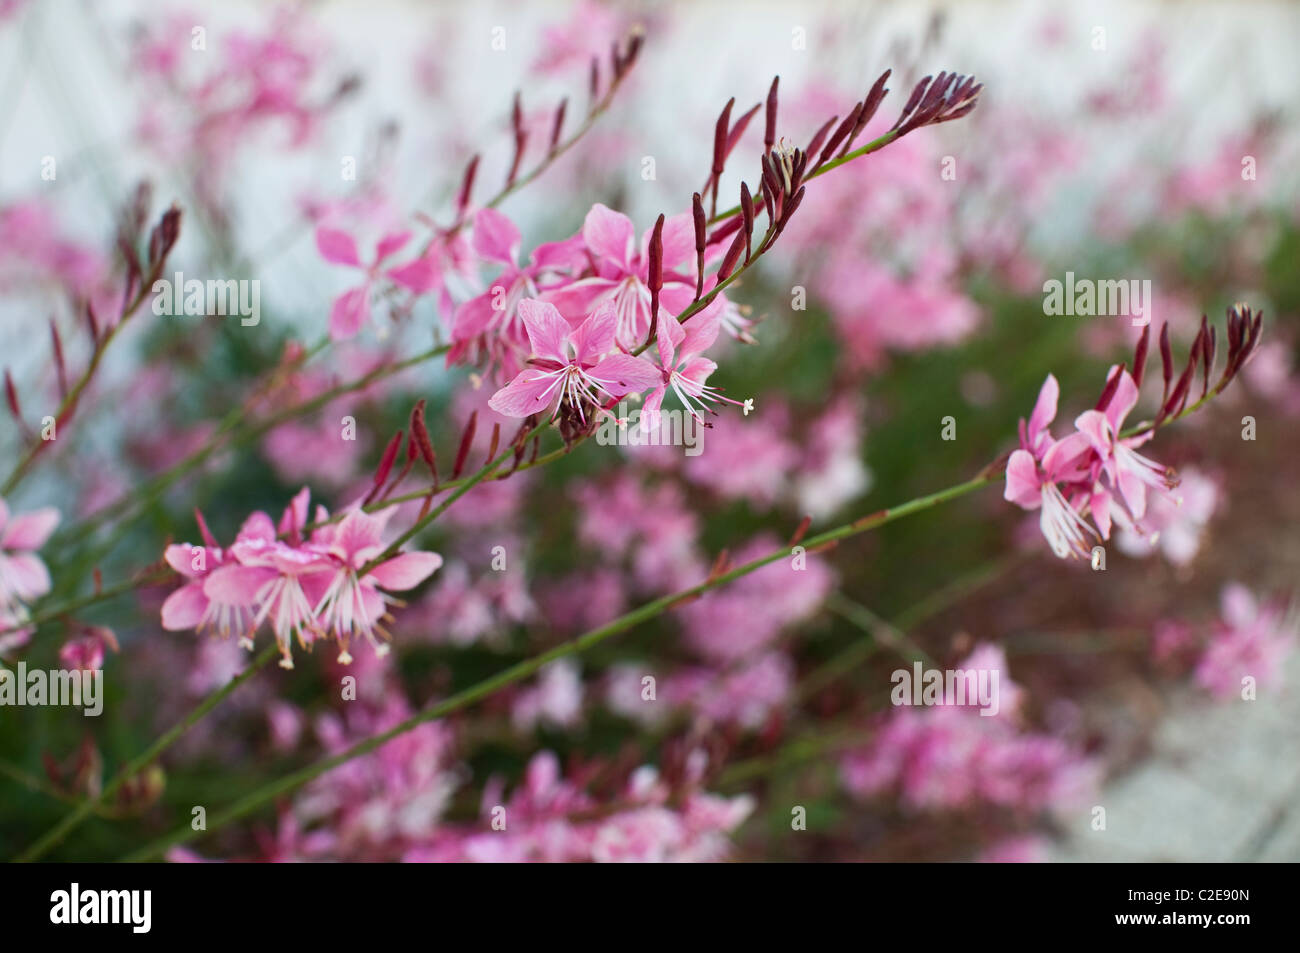 Pink Flowers Used In Landscaping At Rosemary Beach Florida Stock